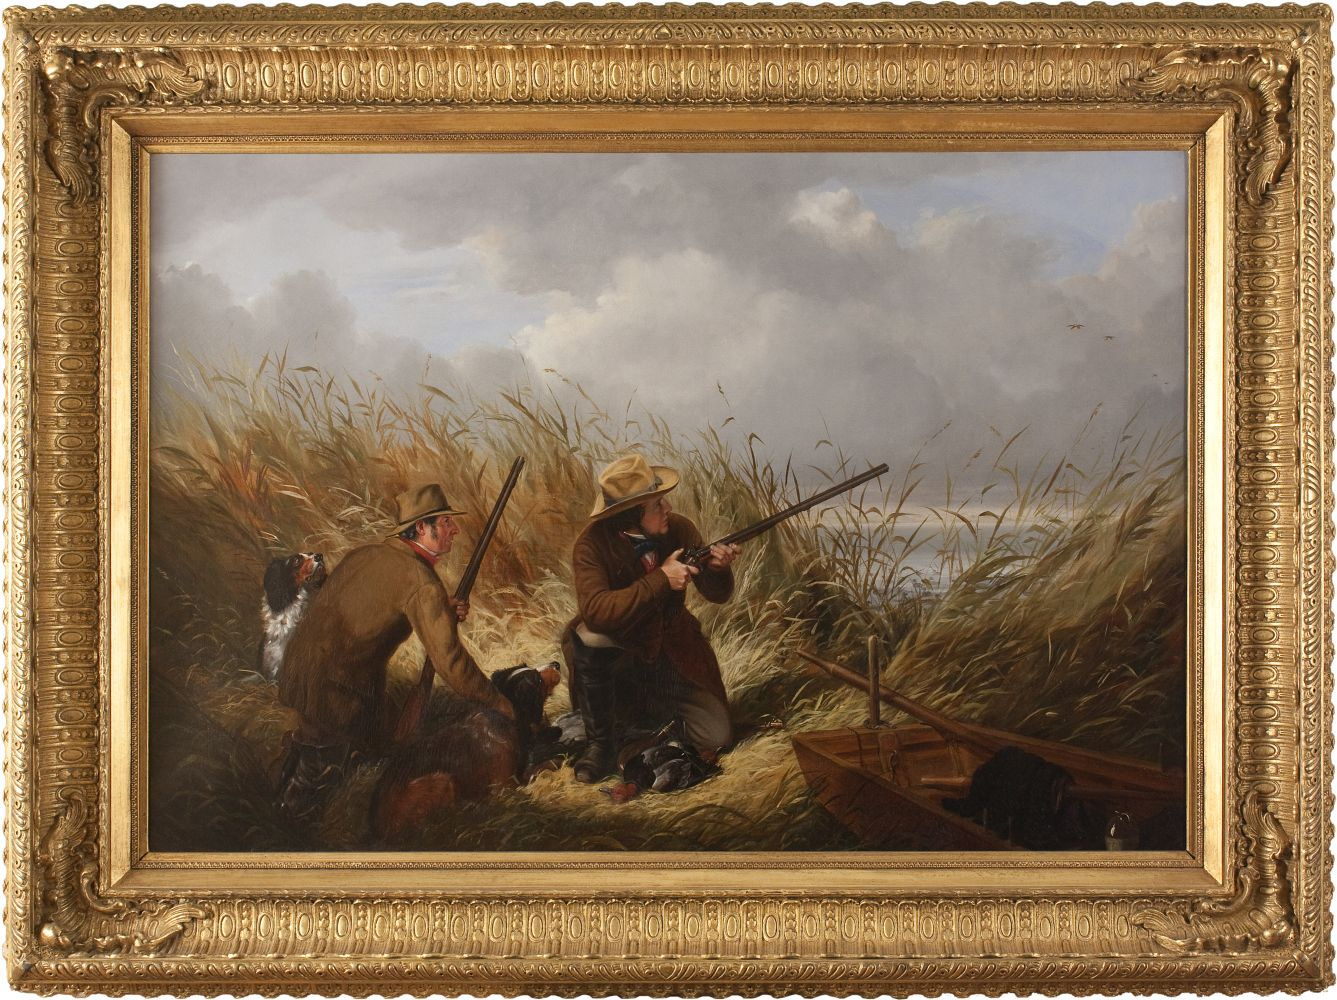 Arthur Fitzwilliam Tait (1819–1905)  Duck Shooting over Decoys, 1854. Oil on canvas. 30 x 43 in. Signed and dated lower right: A. F. Tait 1854 (framed)